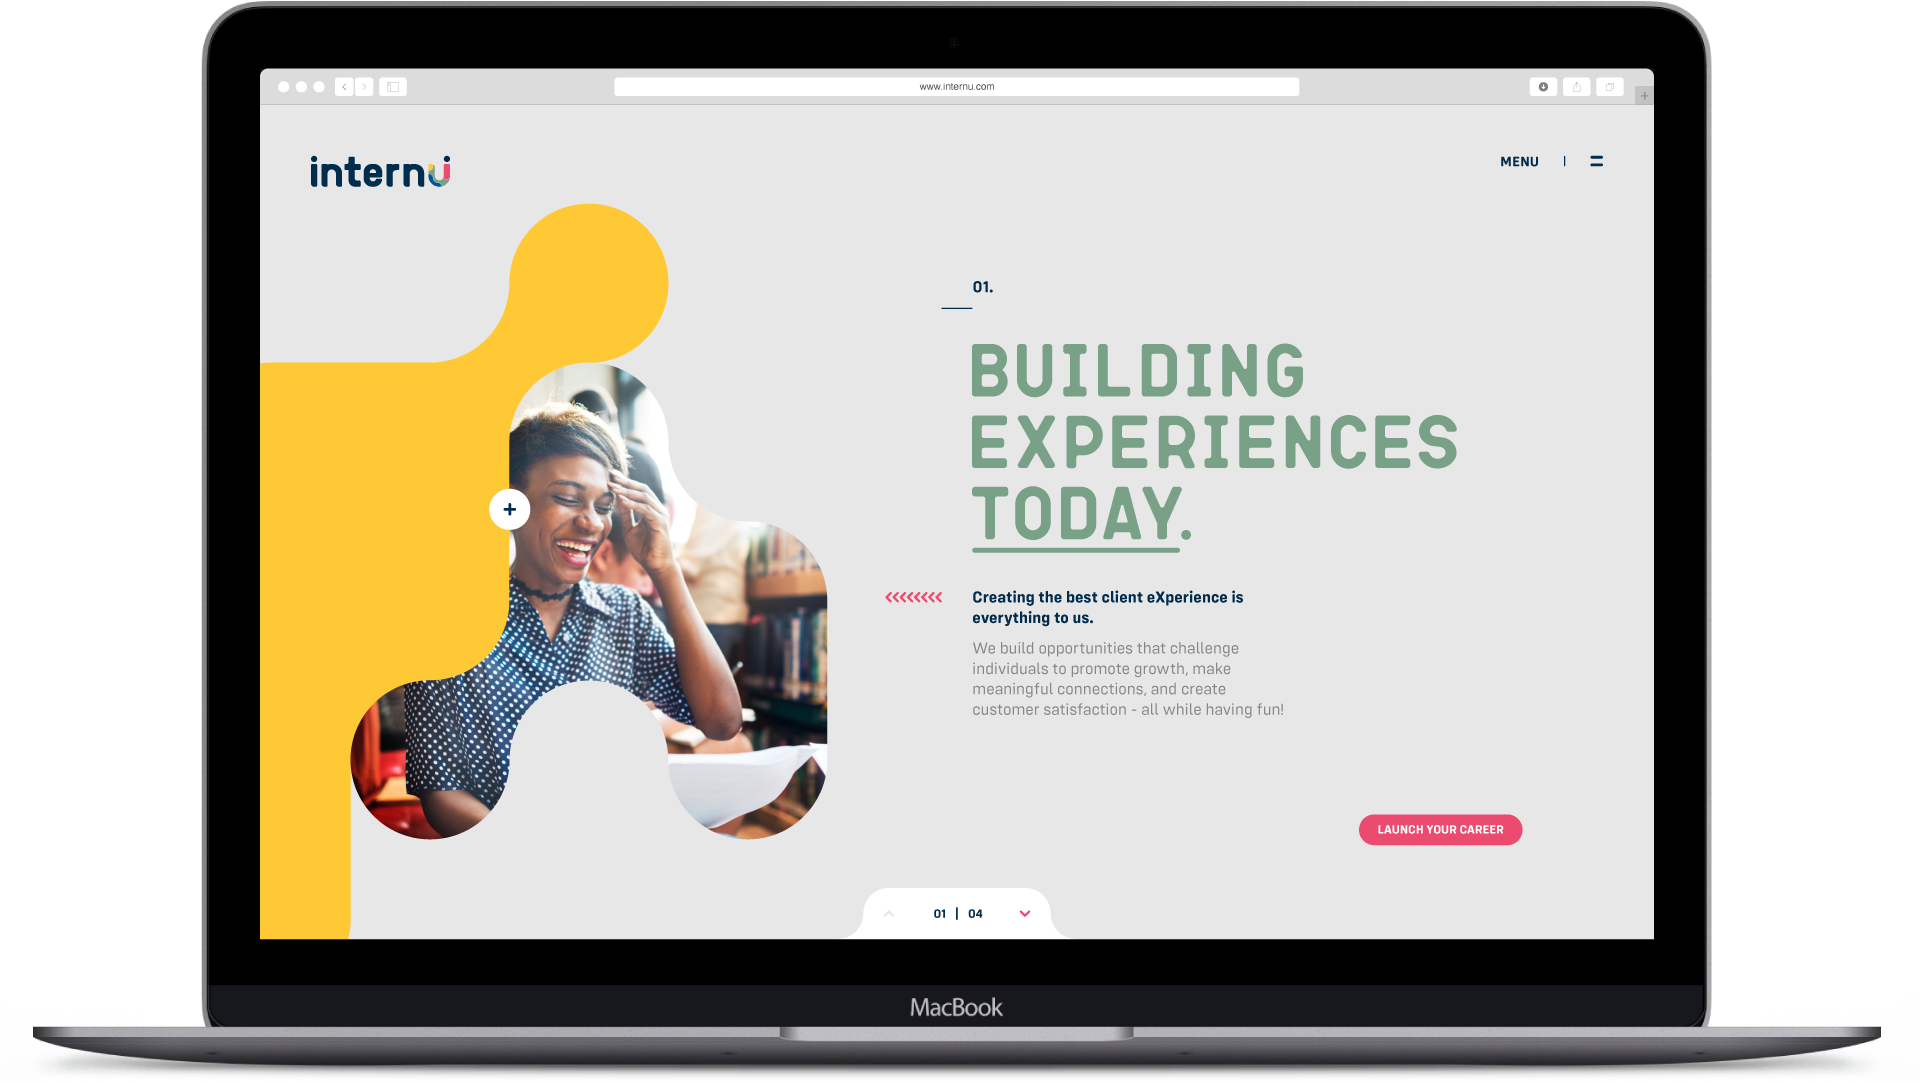 internU website design of the home page.